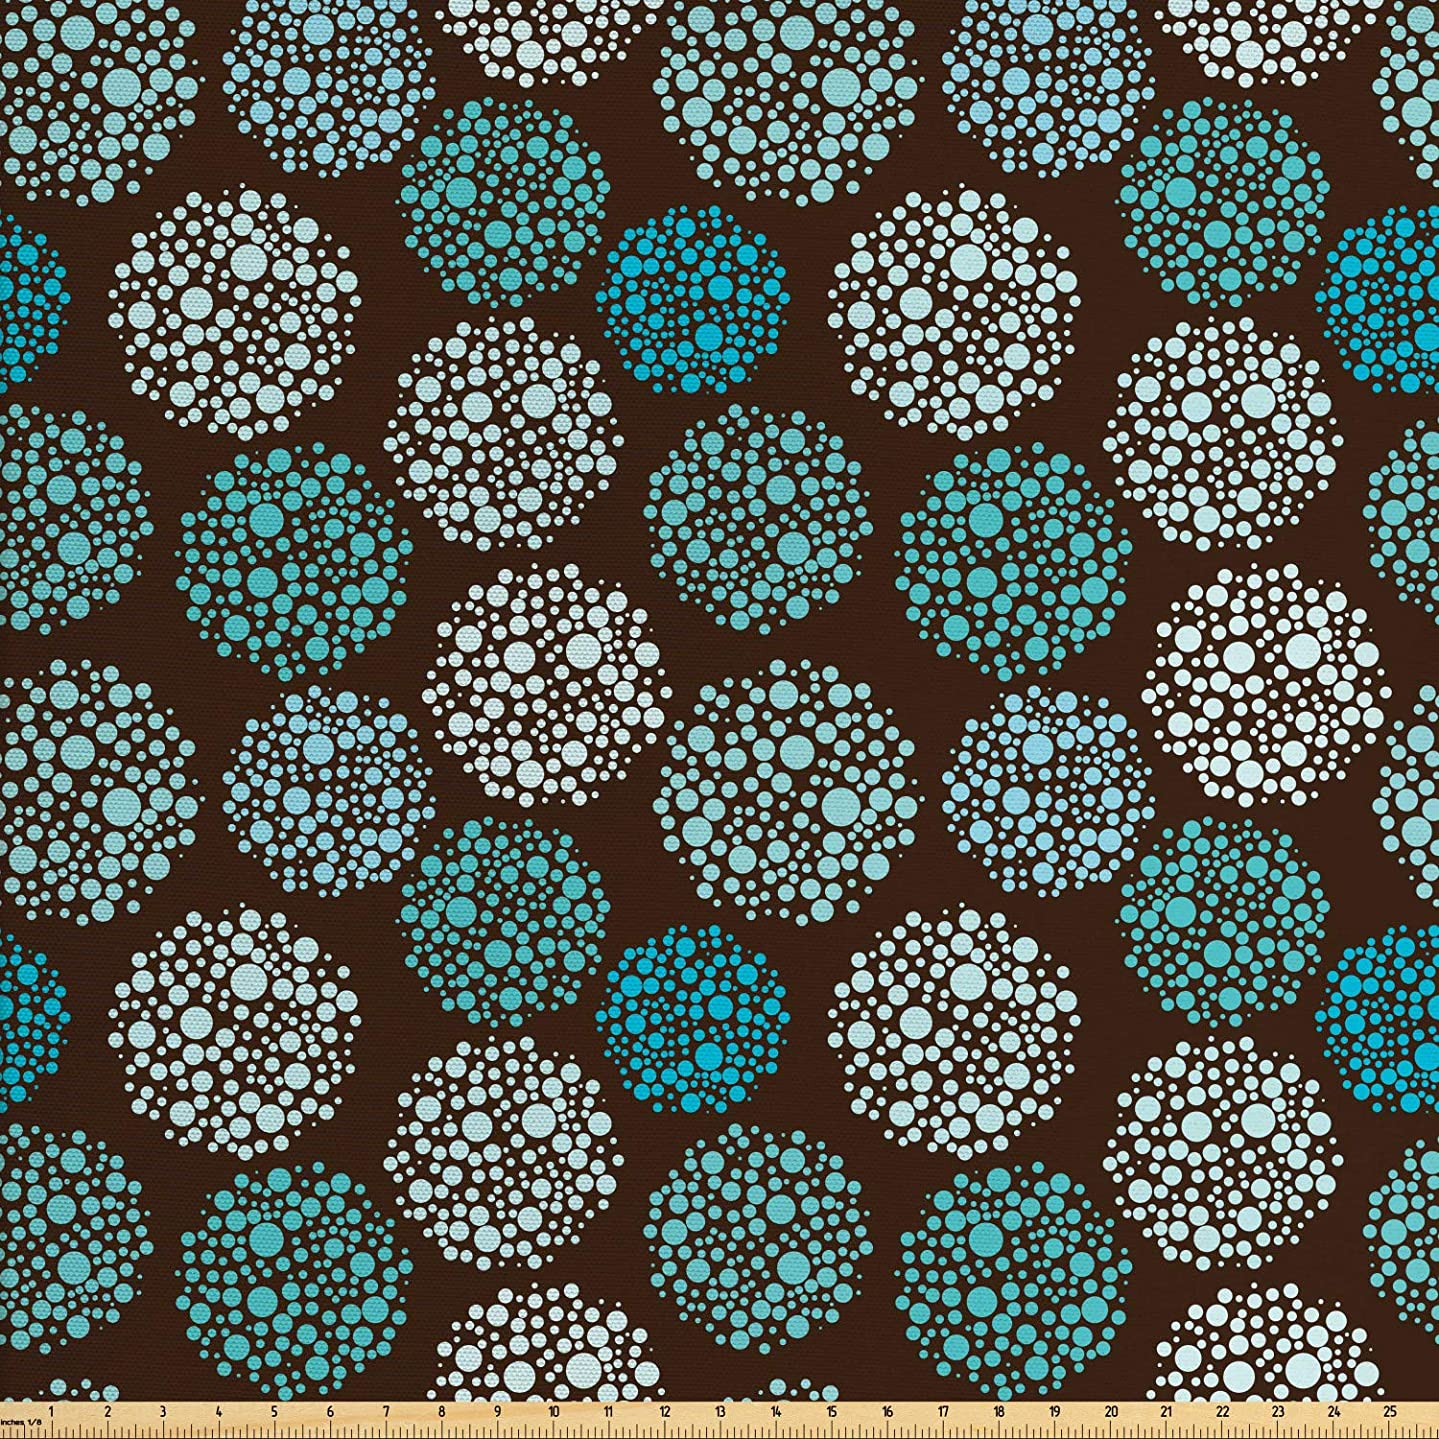 Ambesonne Brown and Blue Fabric by The Yard, Dots Forming Oval Shapes Retro Style Abstract Geometric Vintage, Decorative Fabric for Upholstery and Home Accents, 3 Yards, Brown Turquoise White